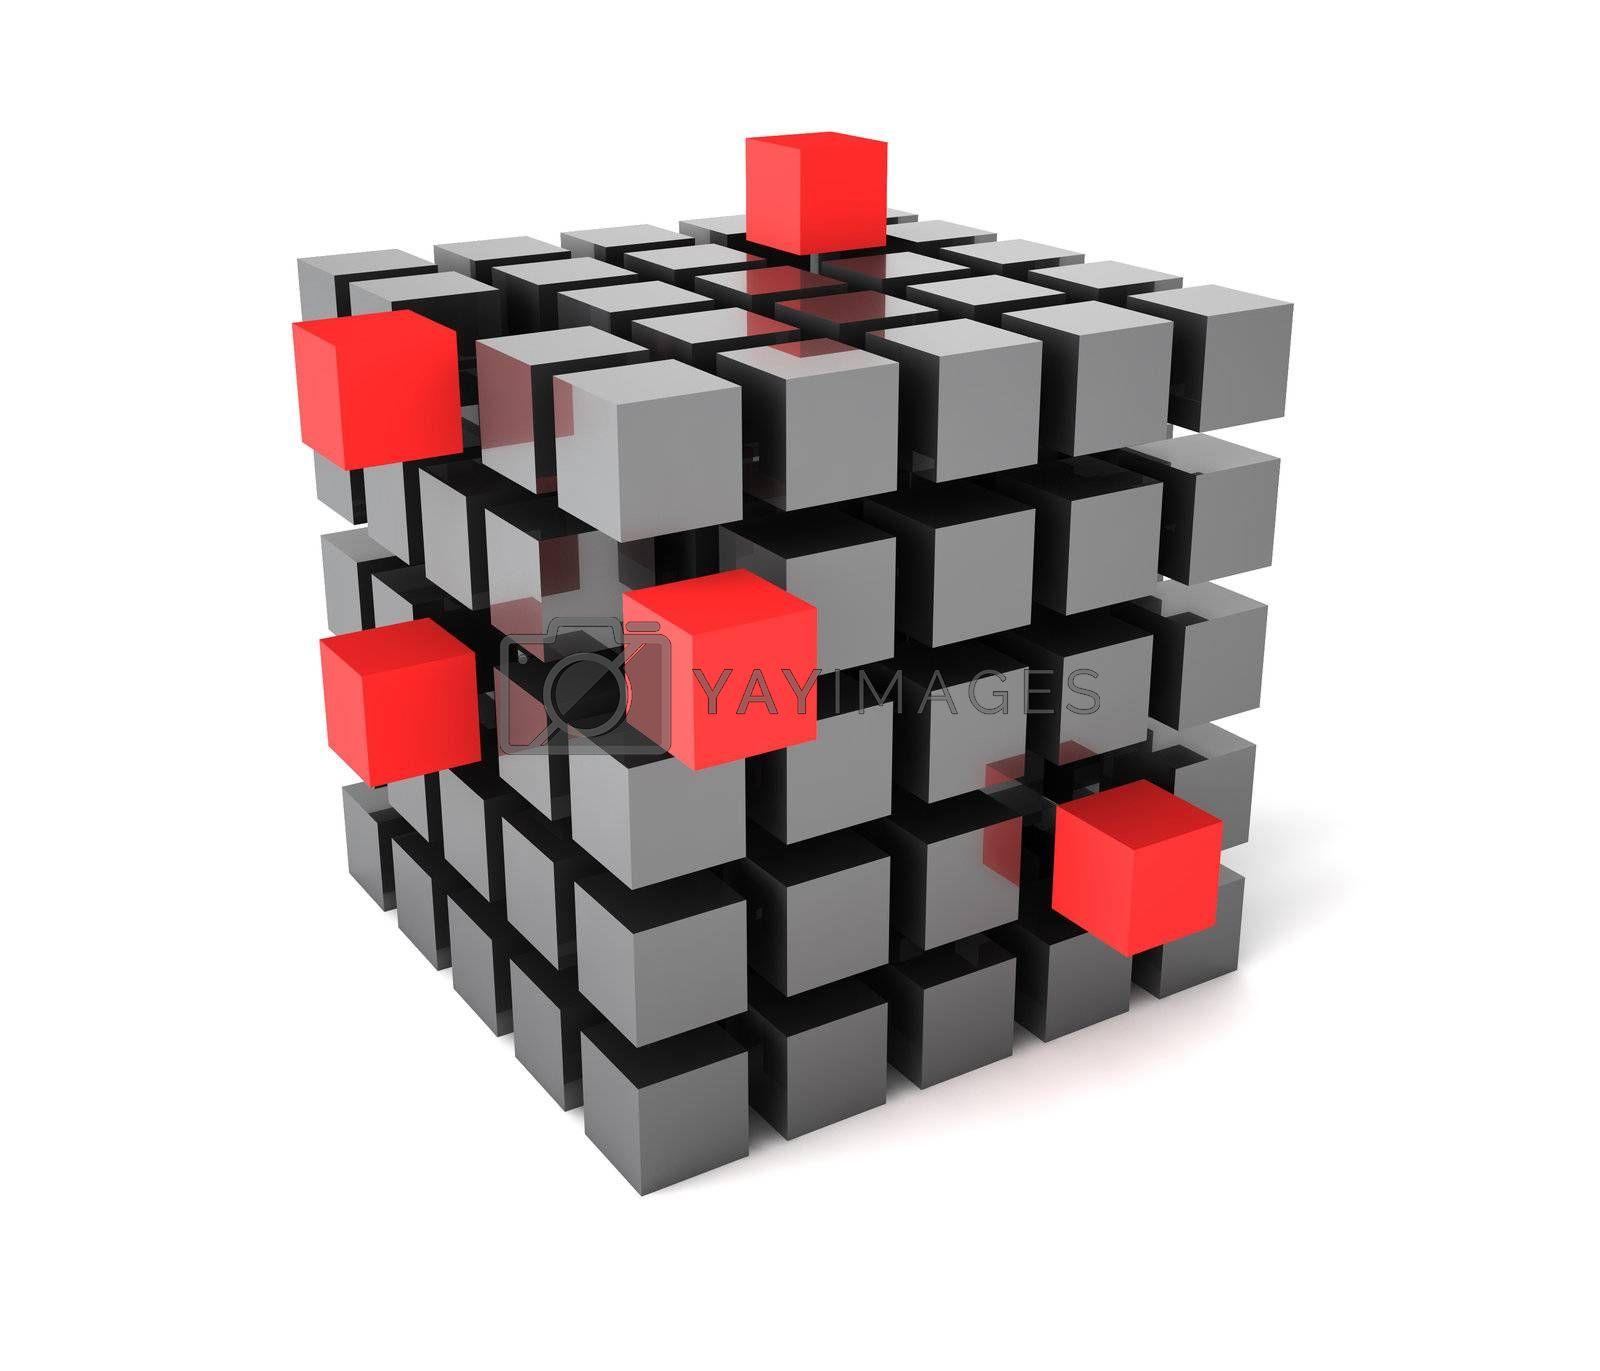 Three-dimentional cube with gray and red blocks isolated on white background